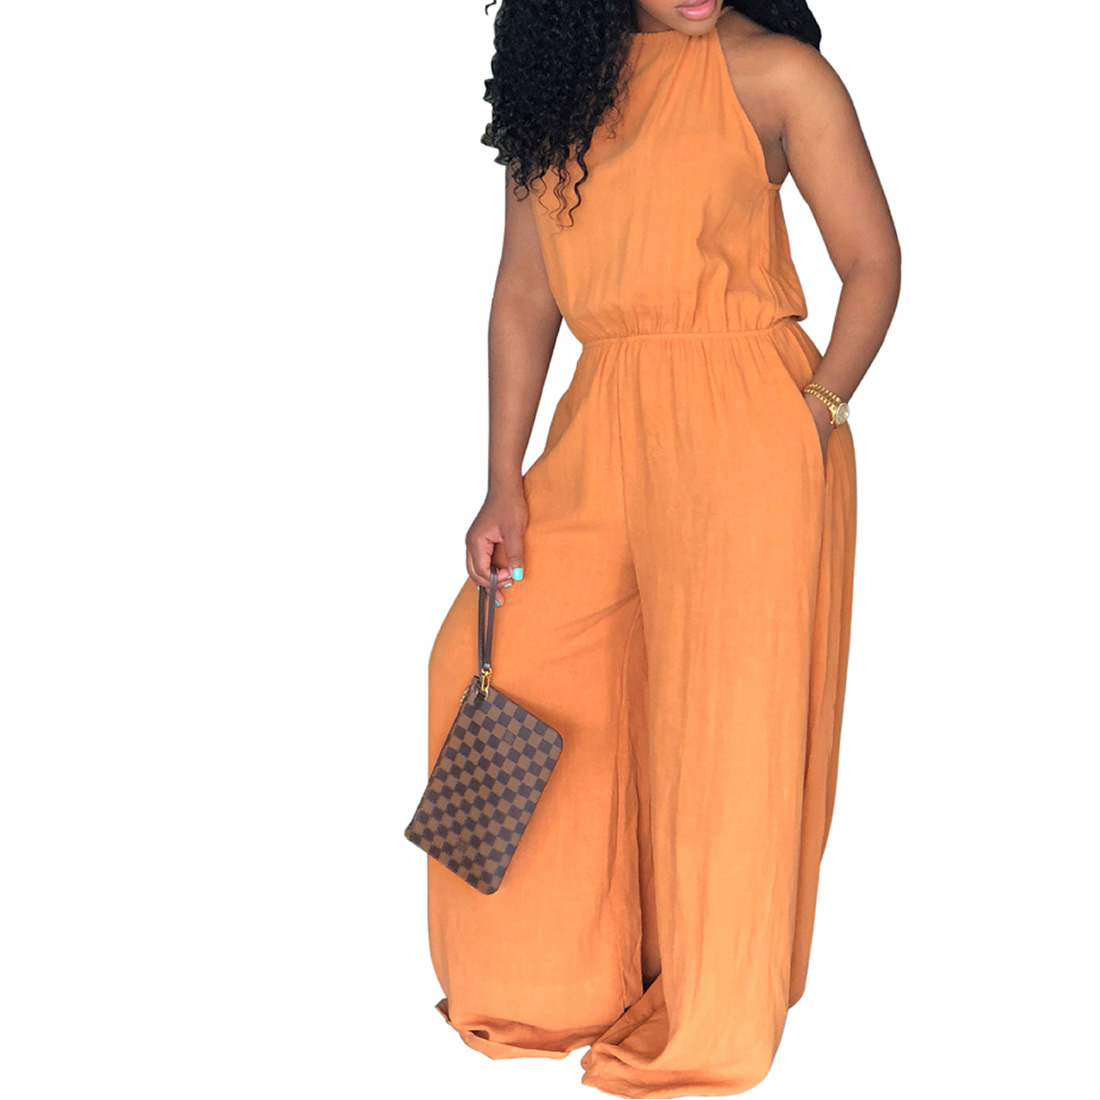 Casual Playsuit Summer Romper Women Jumpsuits Overalls 2018 Solid Sleeveless Long Playsu ...